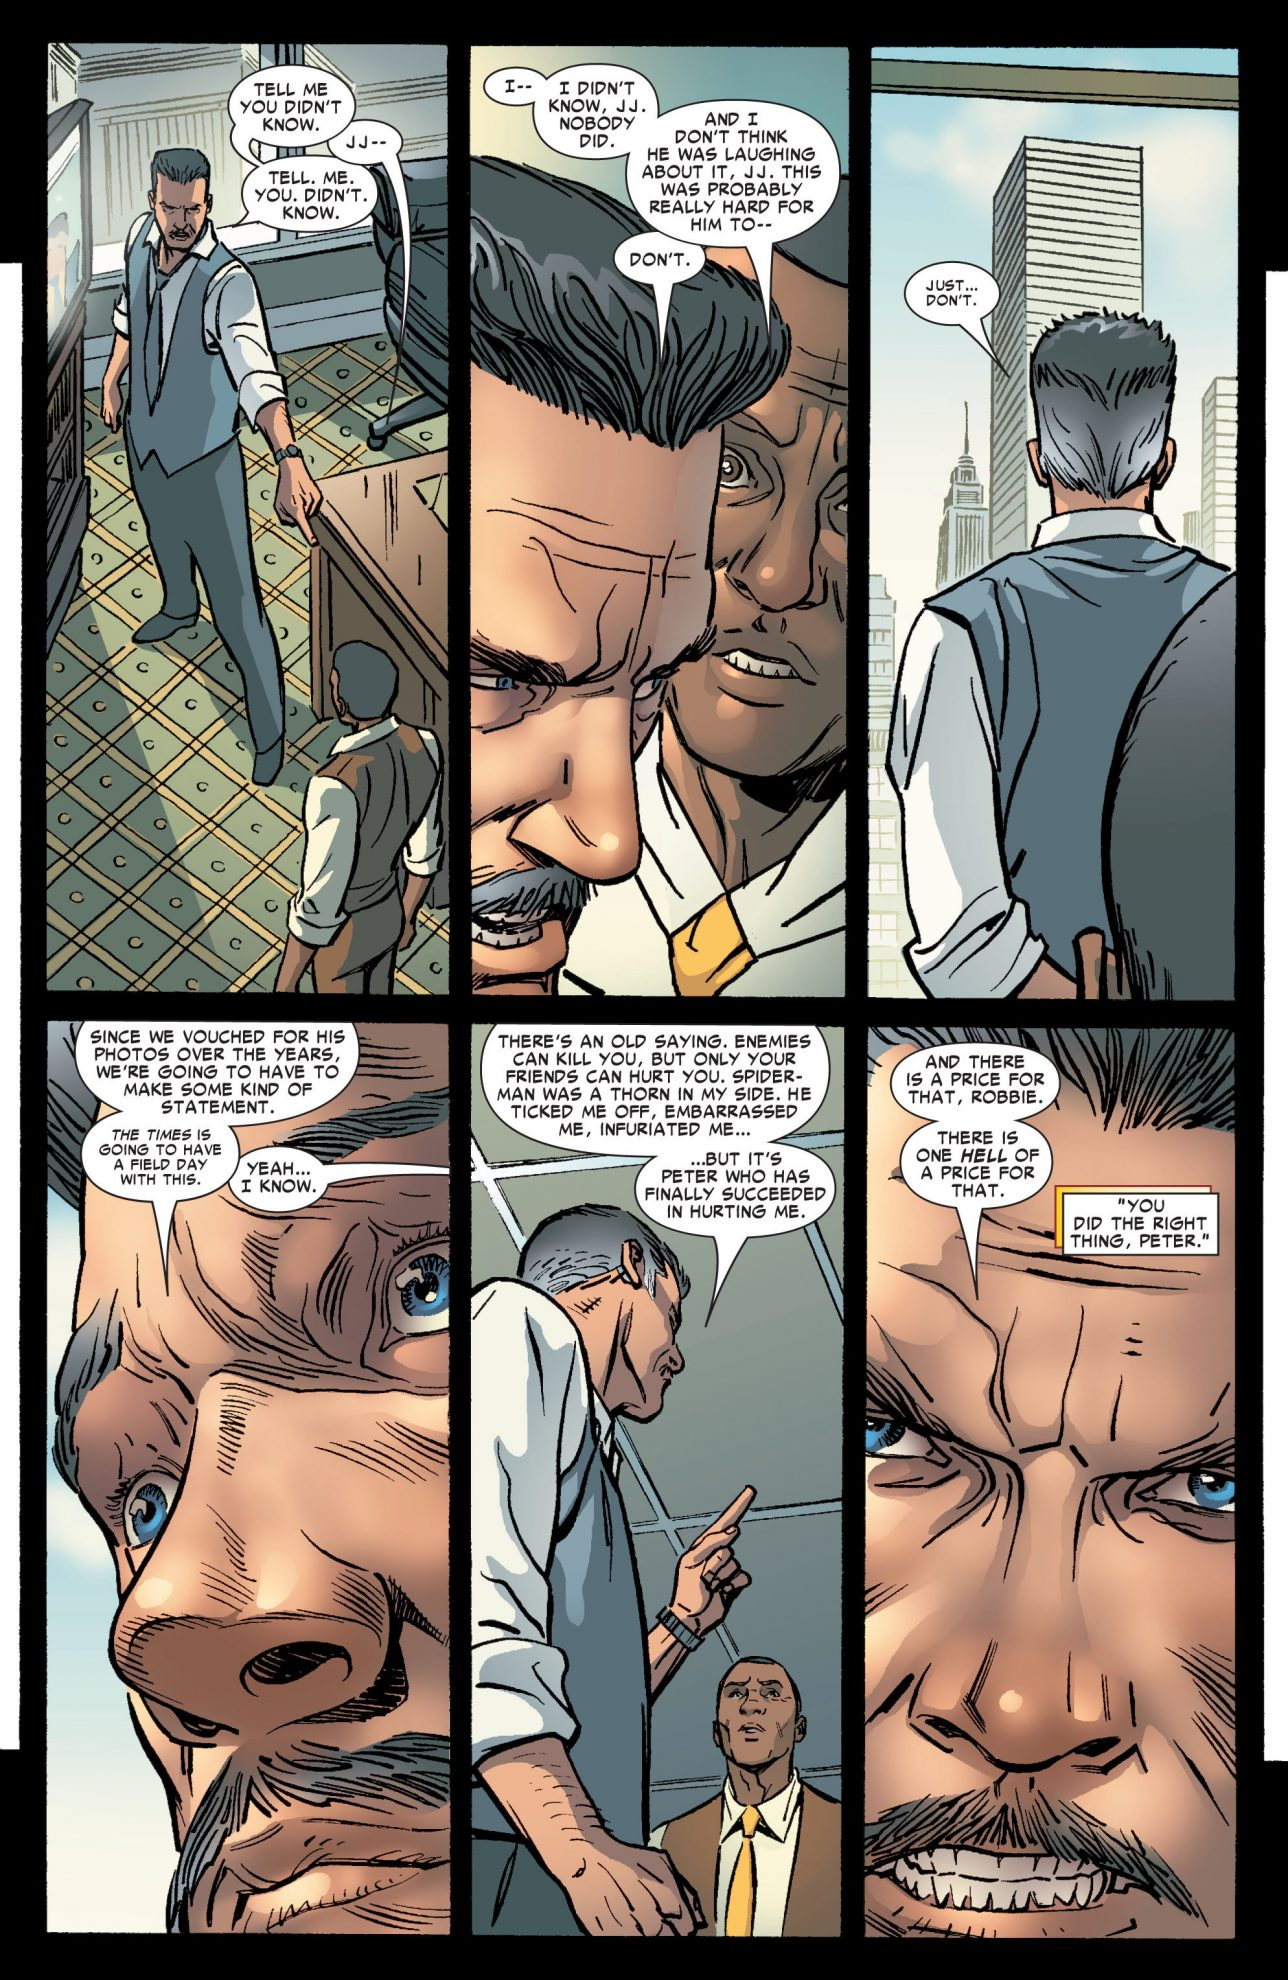 J Jonah Jameson Learns Peter Parker Is Spider-Man